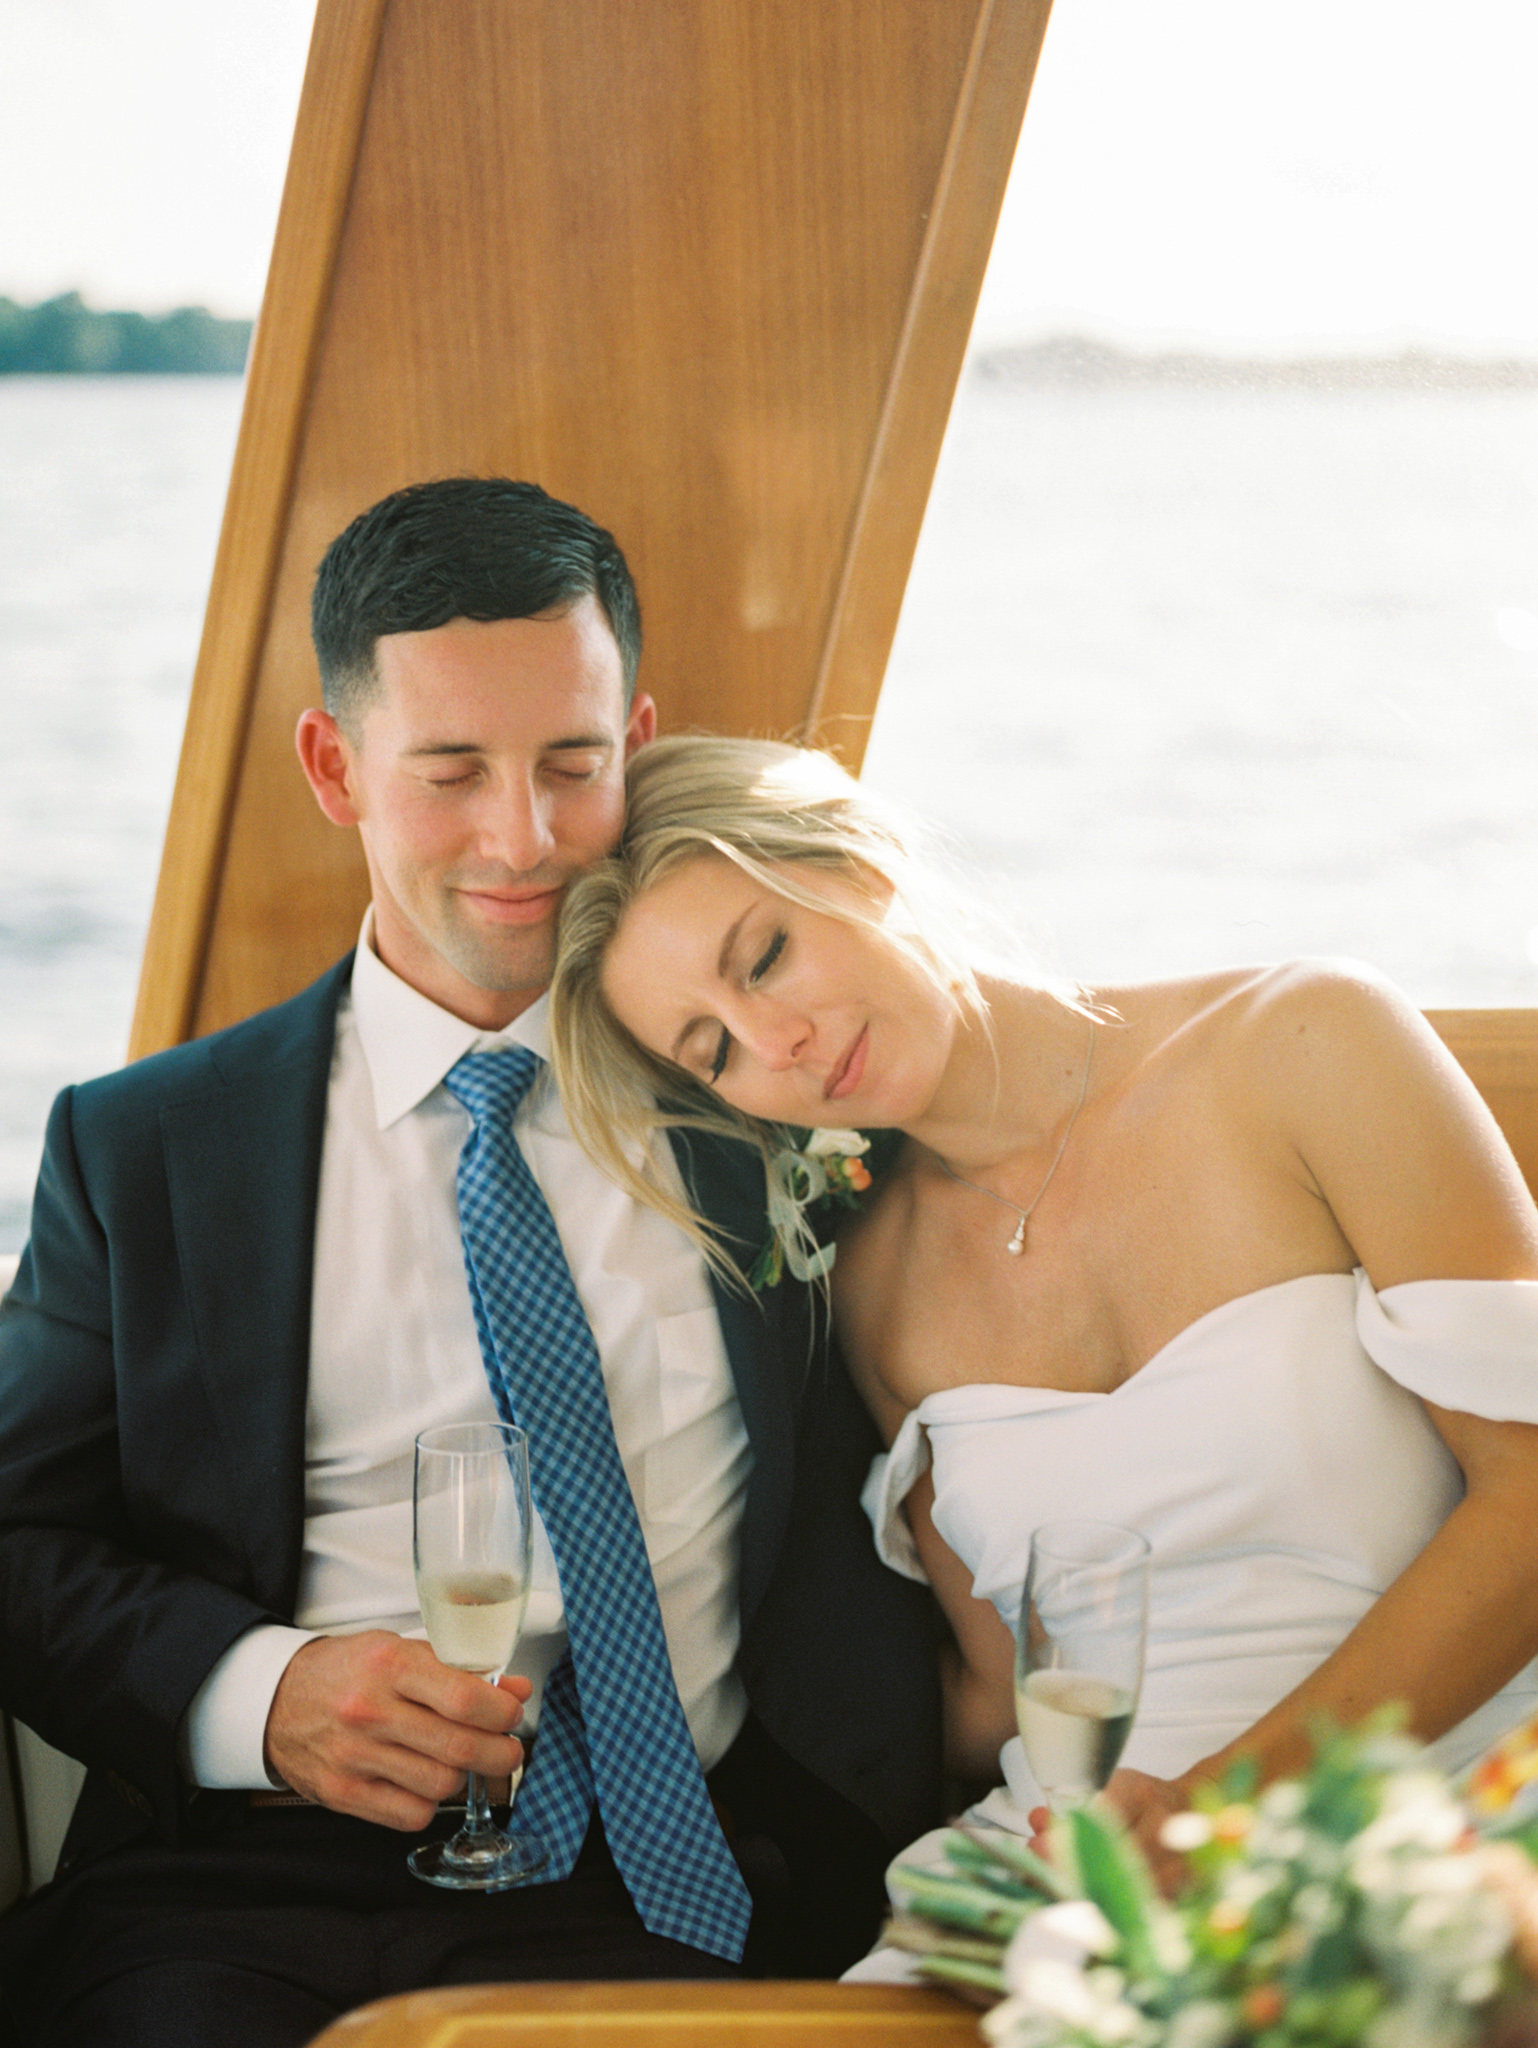 Gray_Joiner_e. losinio photography_annapolis-maryland-waterfront-elopement-319